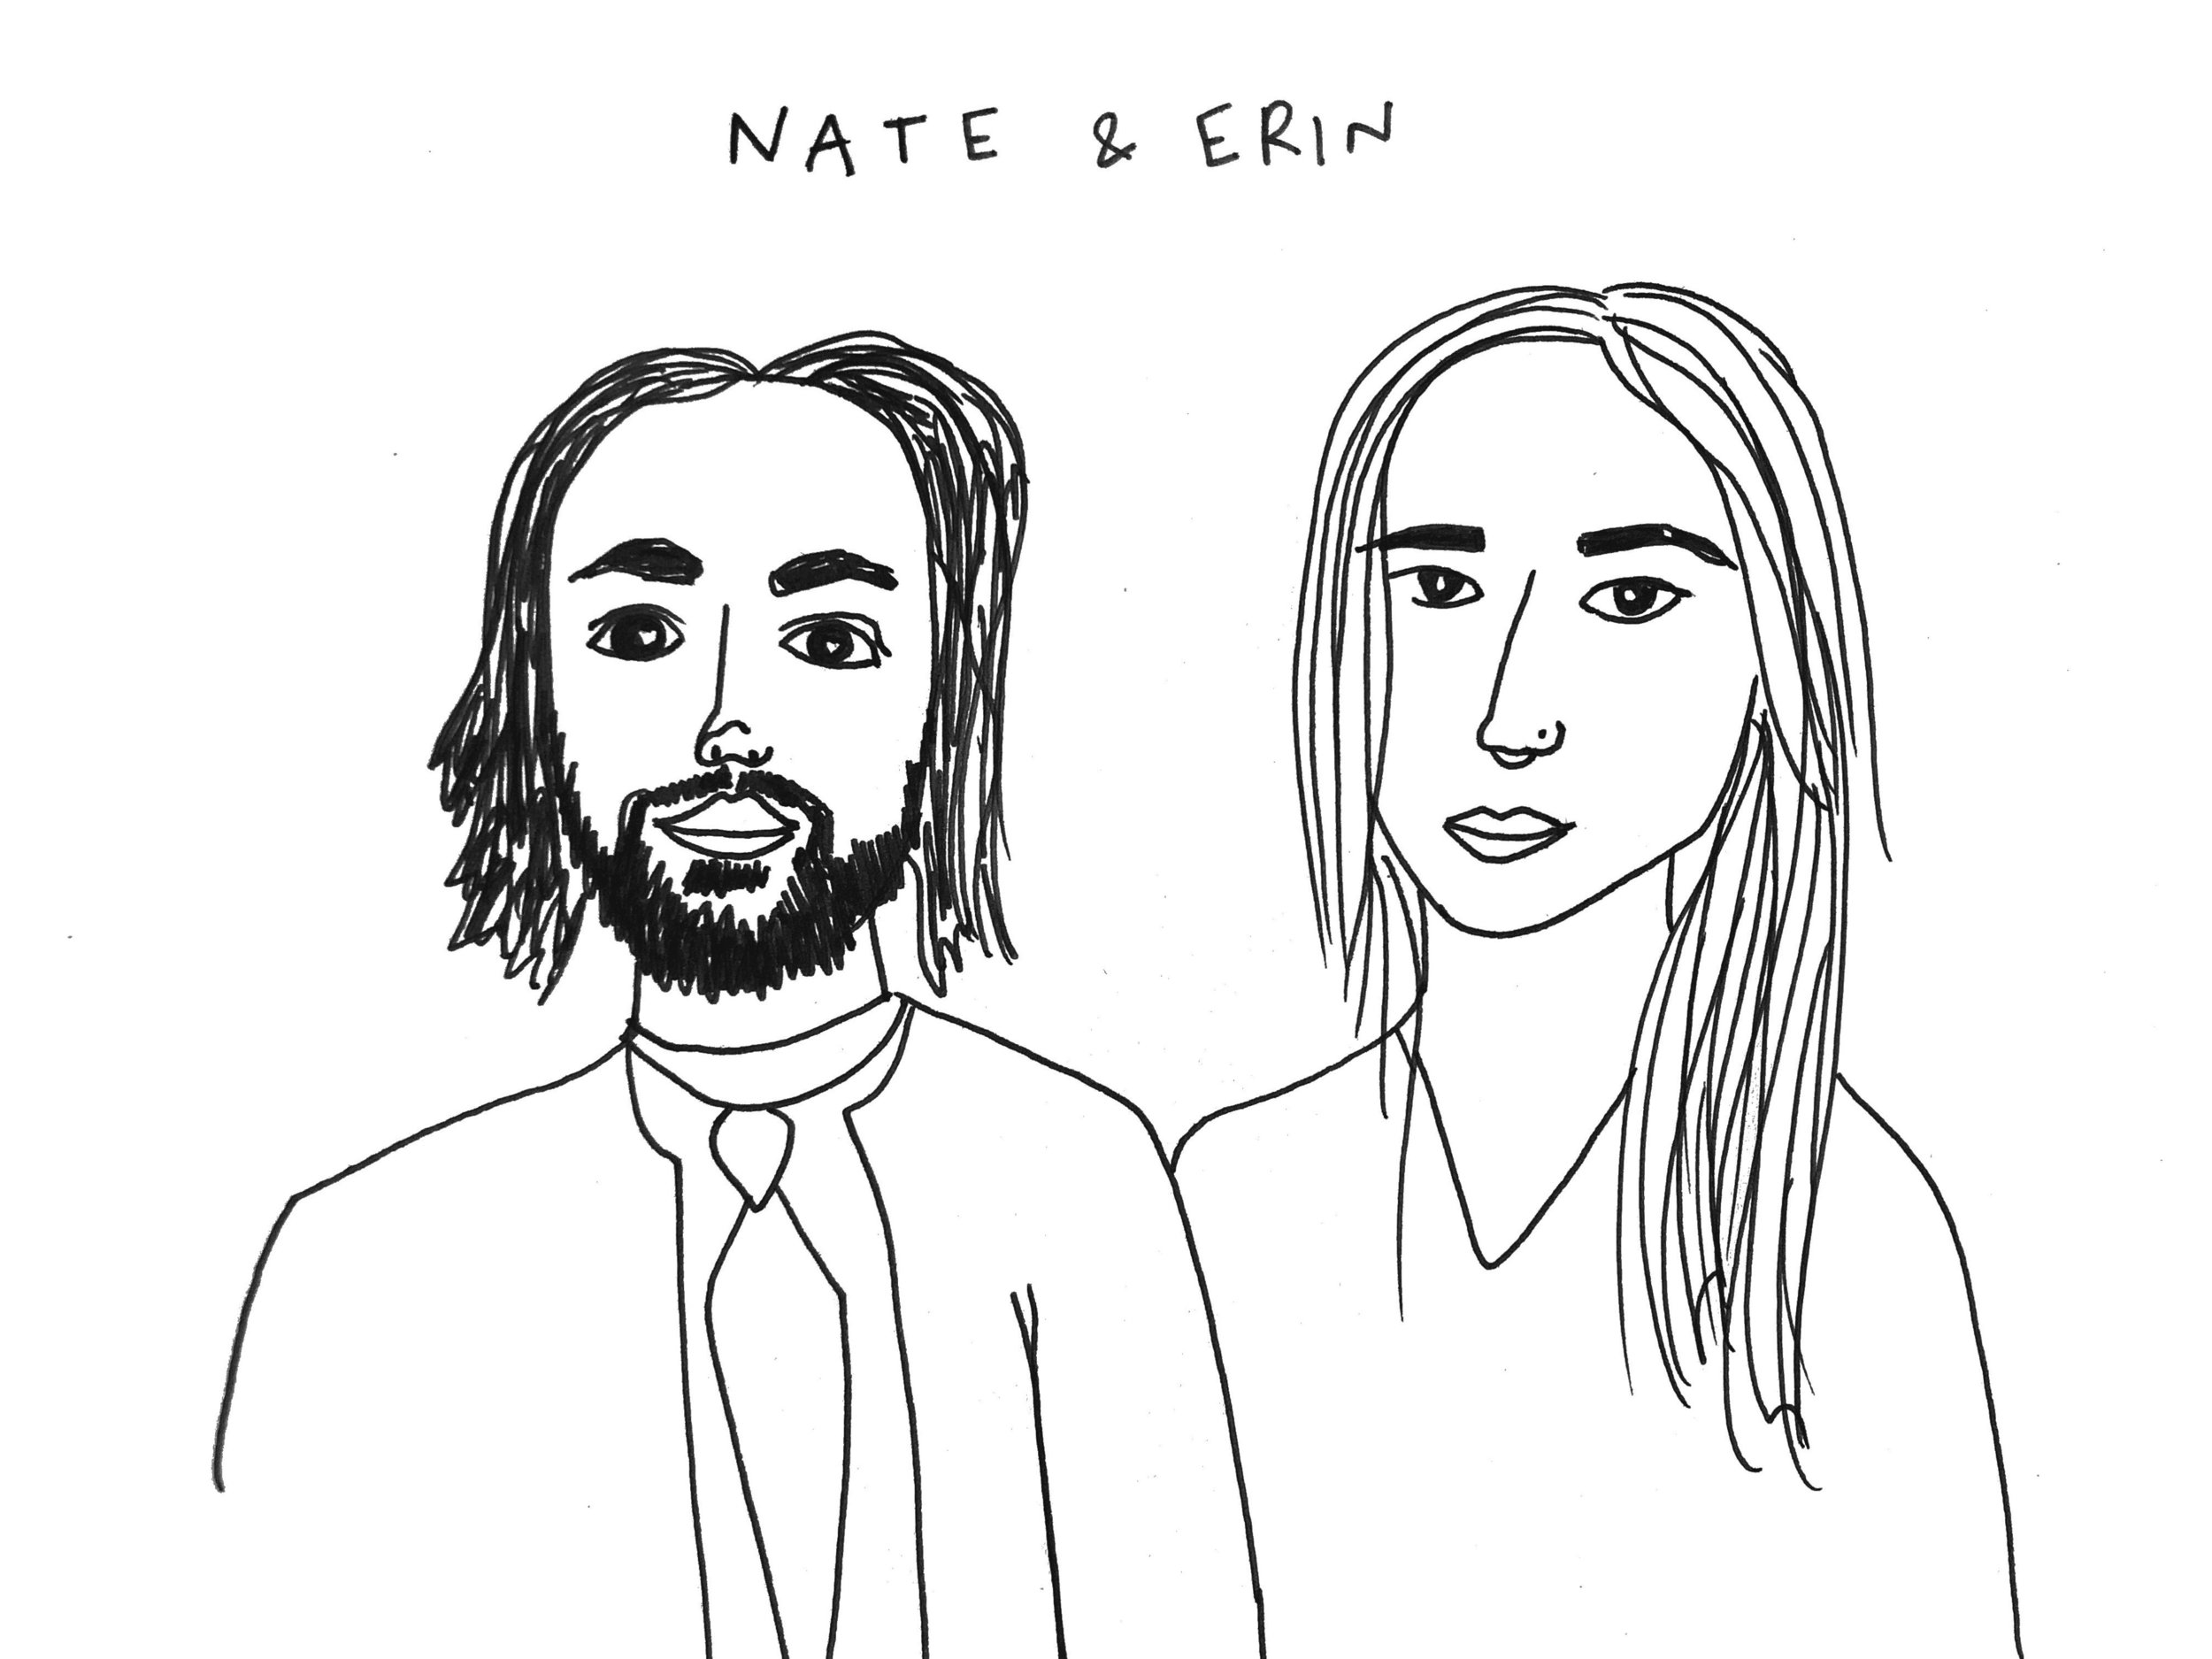 nate and erin.JPEG